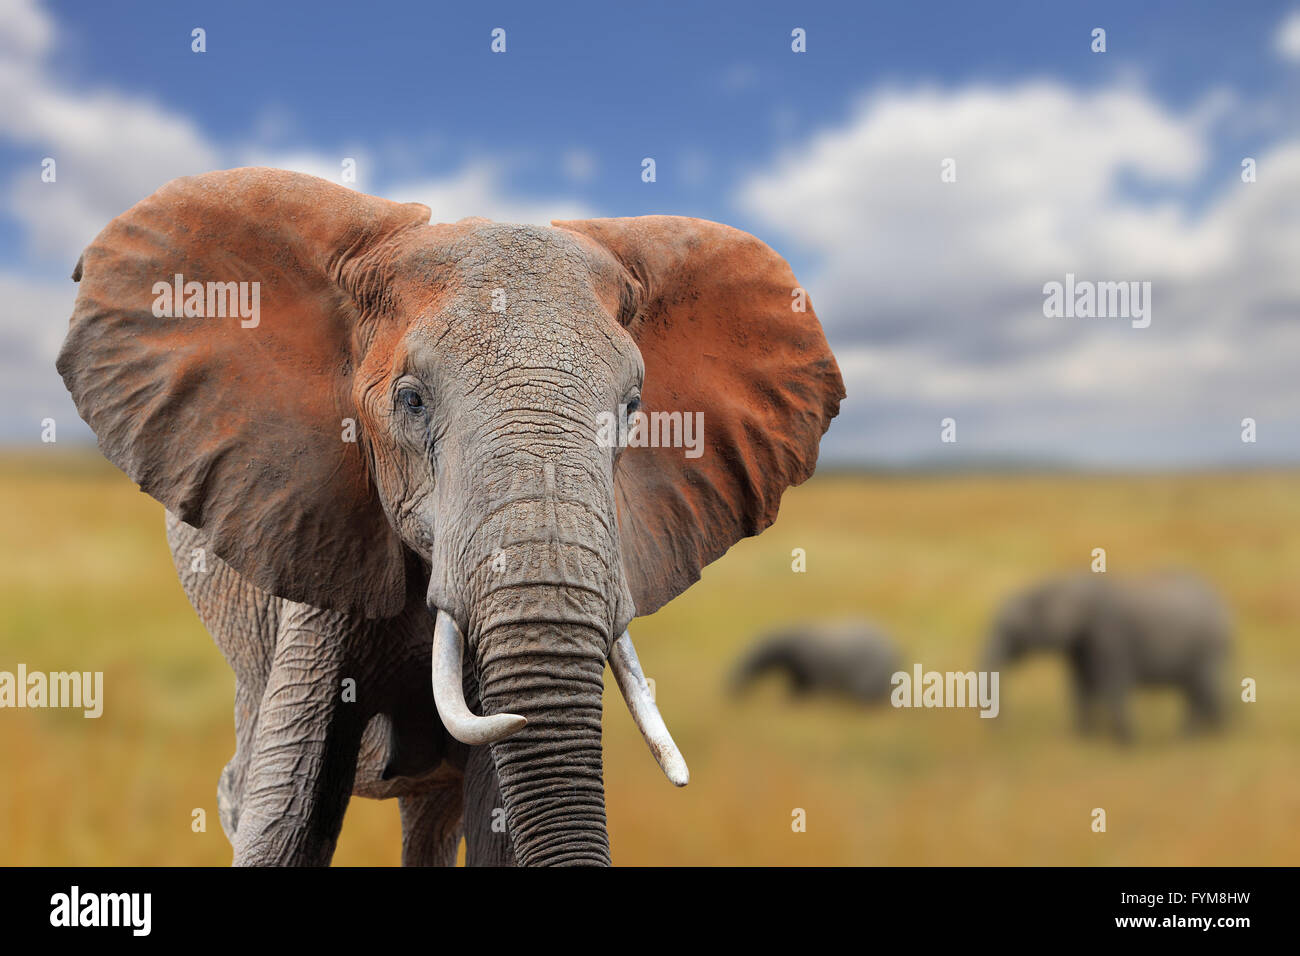 Elefanten in der Savanne in Afrika, Nationalpark in Kenia Stockbild